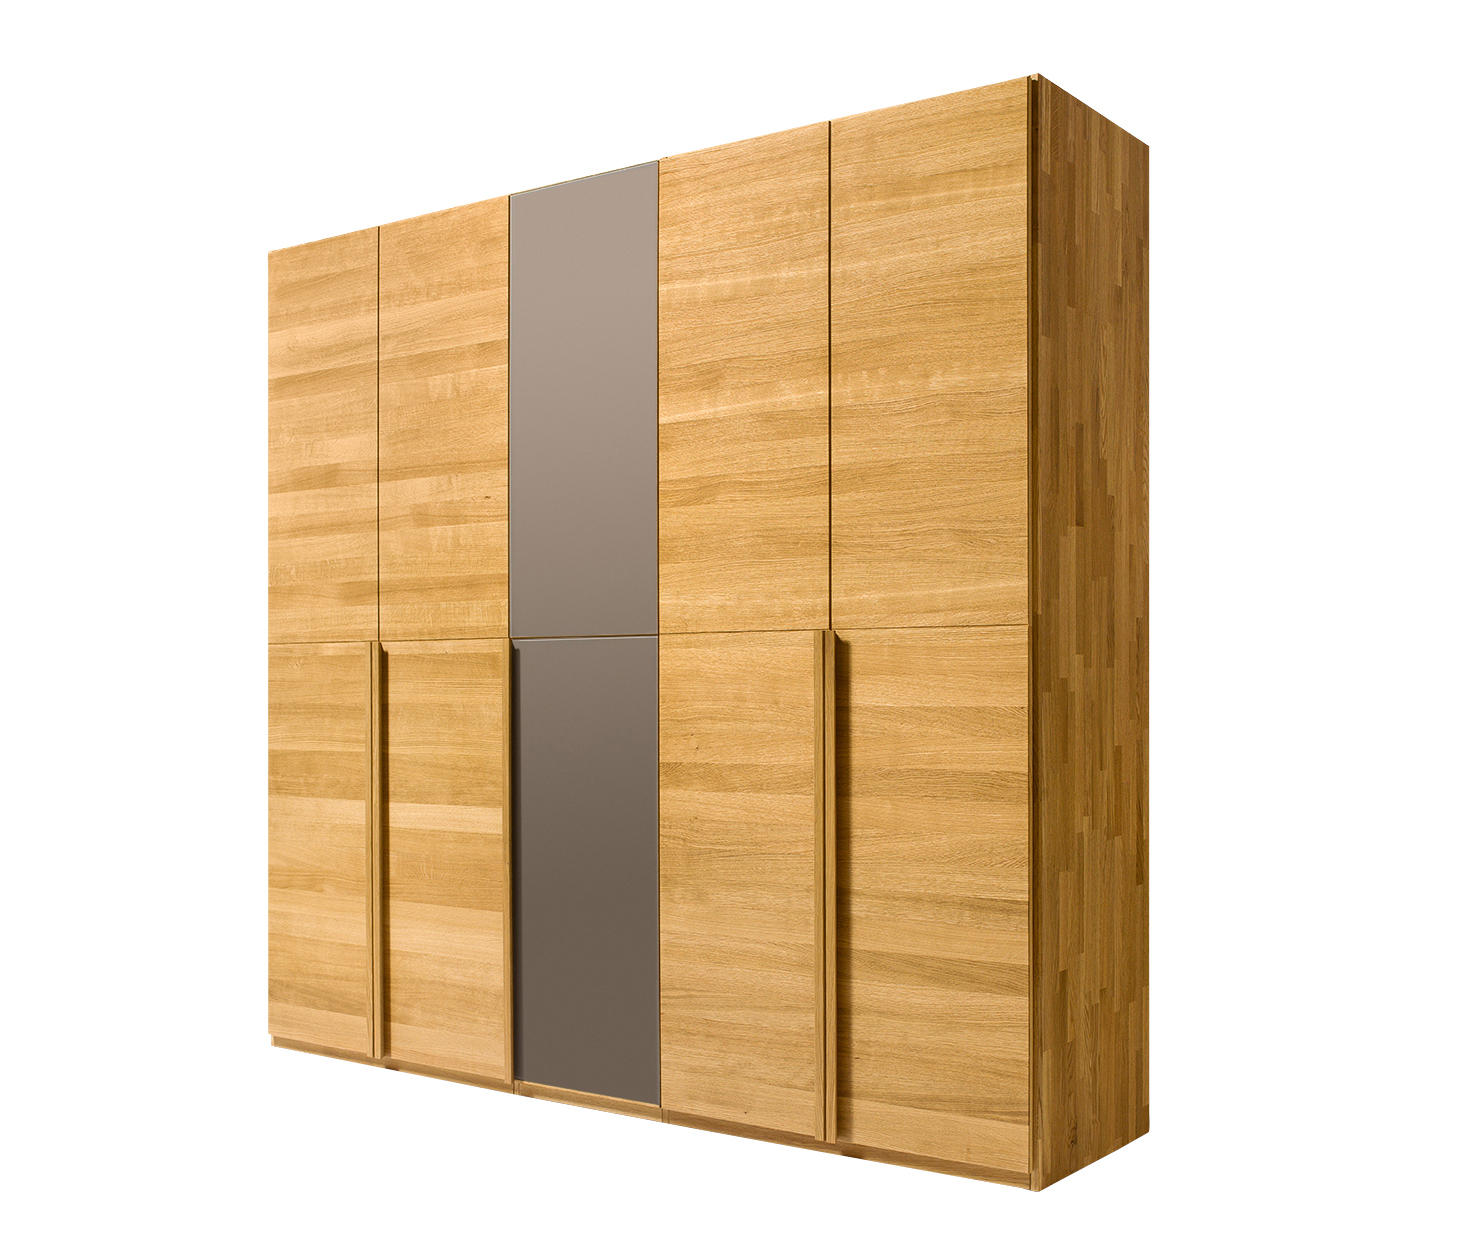 Schrank System Soft Wardrobe System Cabinets From Team 7 Architonic